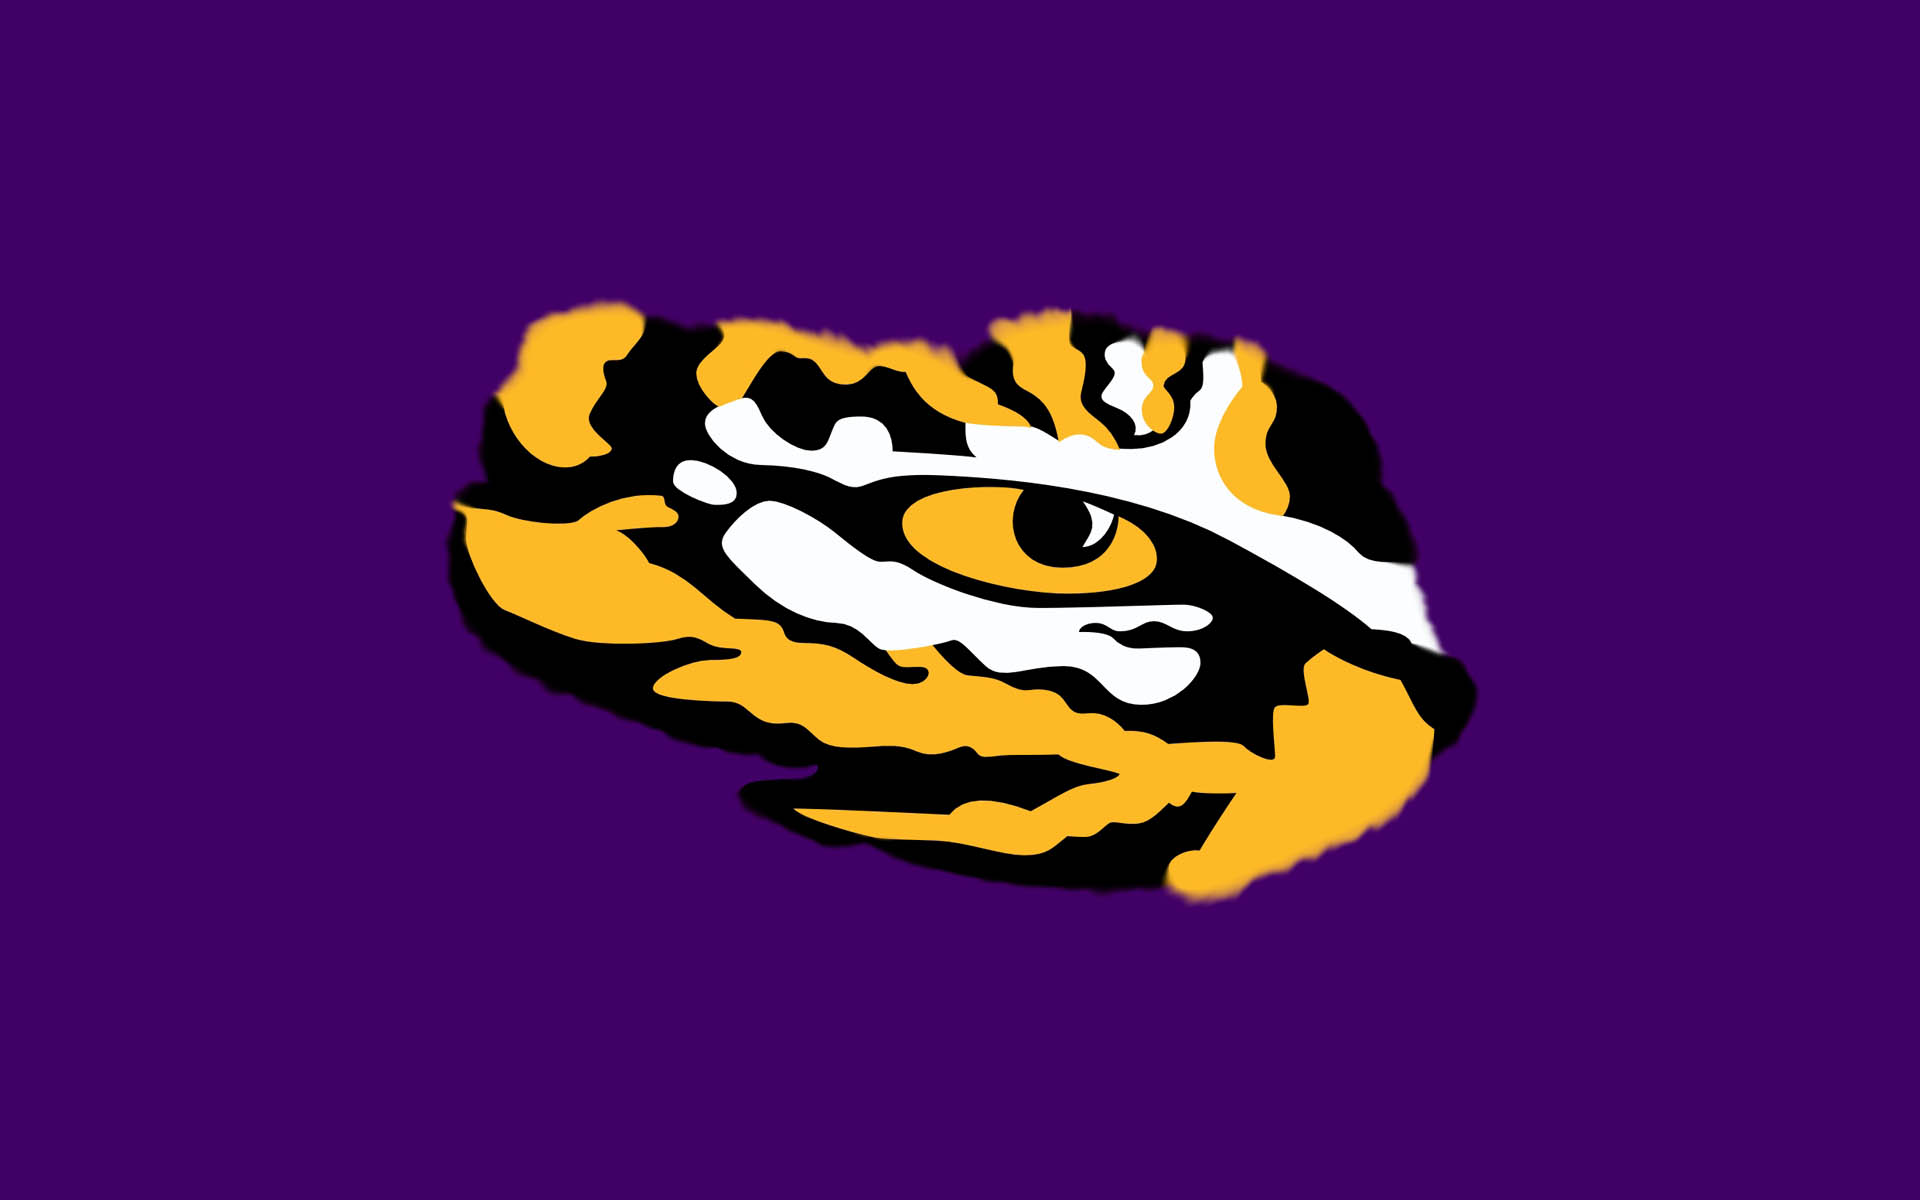 wallpaper details file name lsu wallpaper uploaded by mika date 19 11 1920x1200